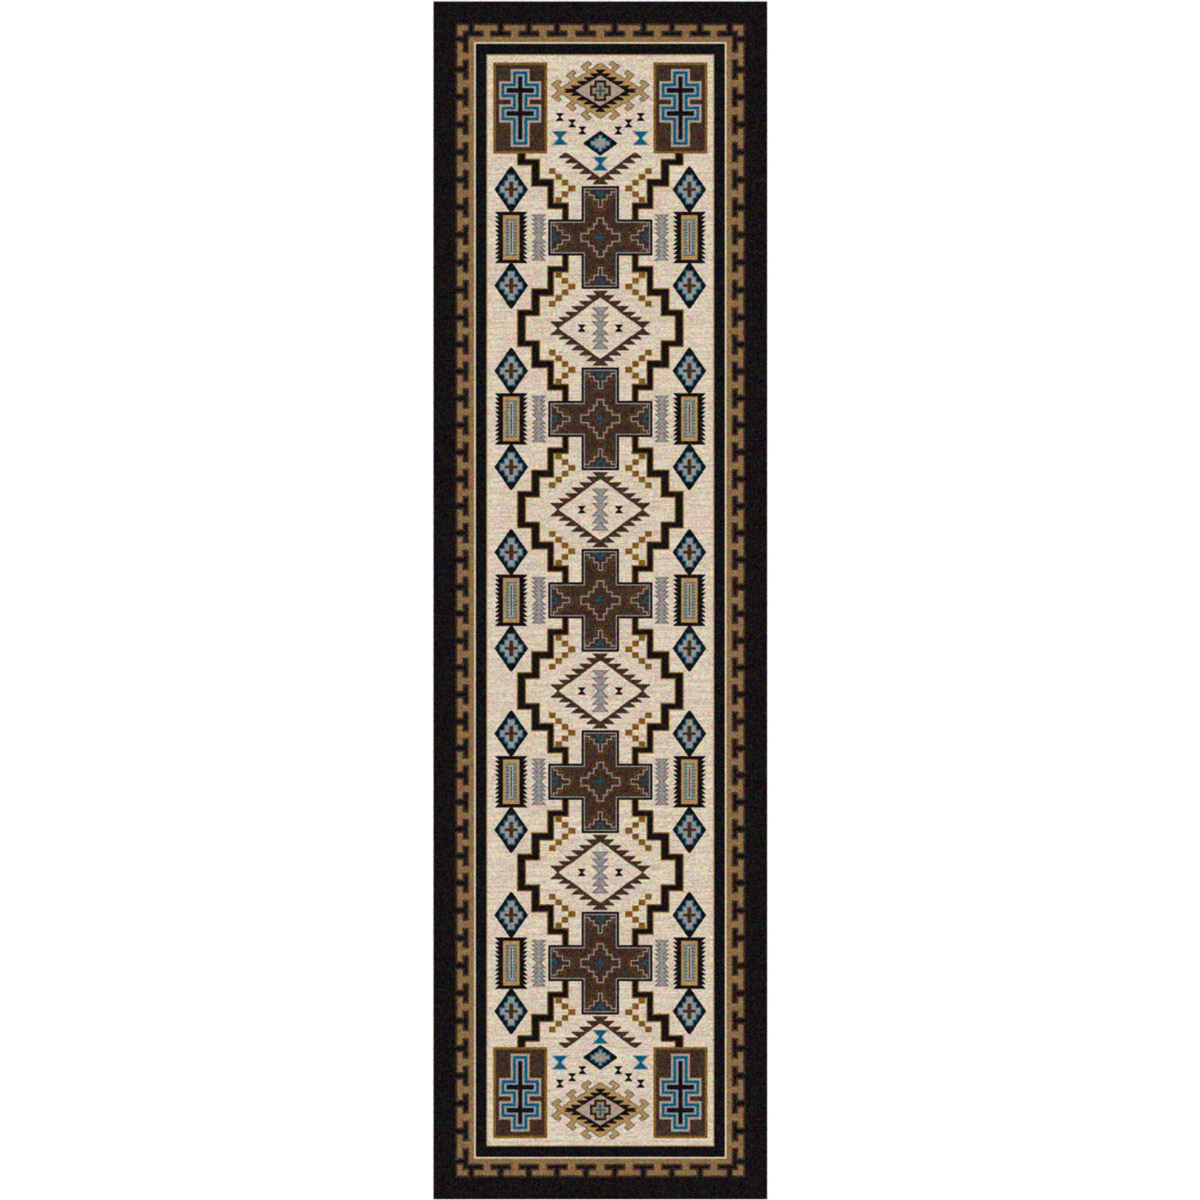 Double Cross Blue Rug - 2 x 8